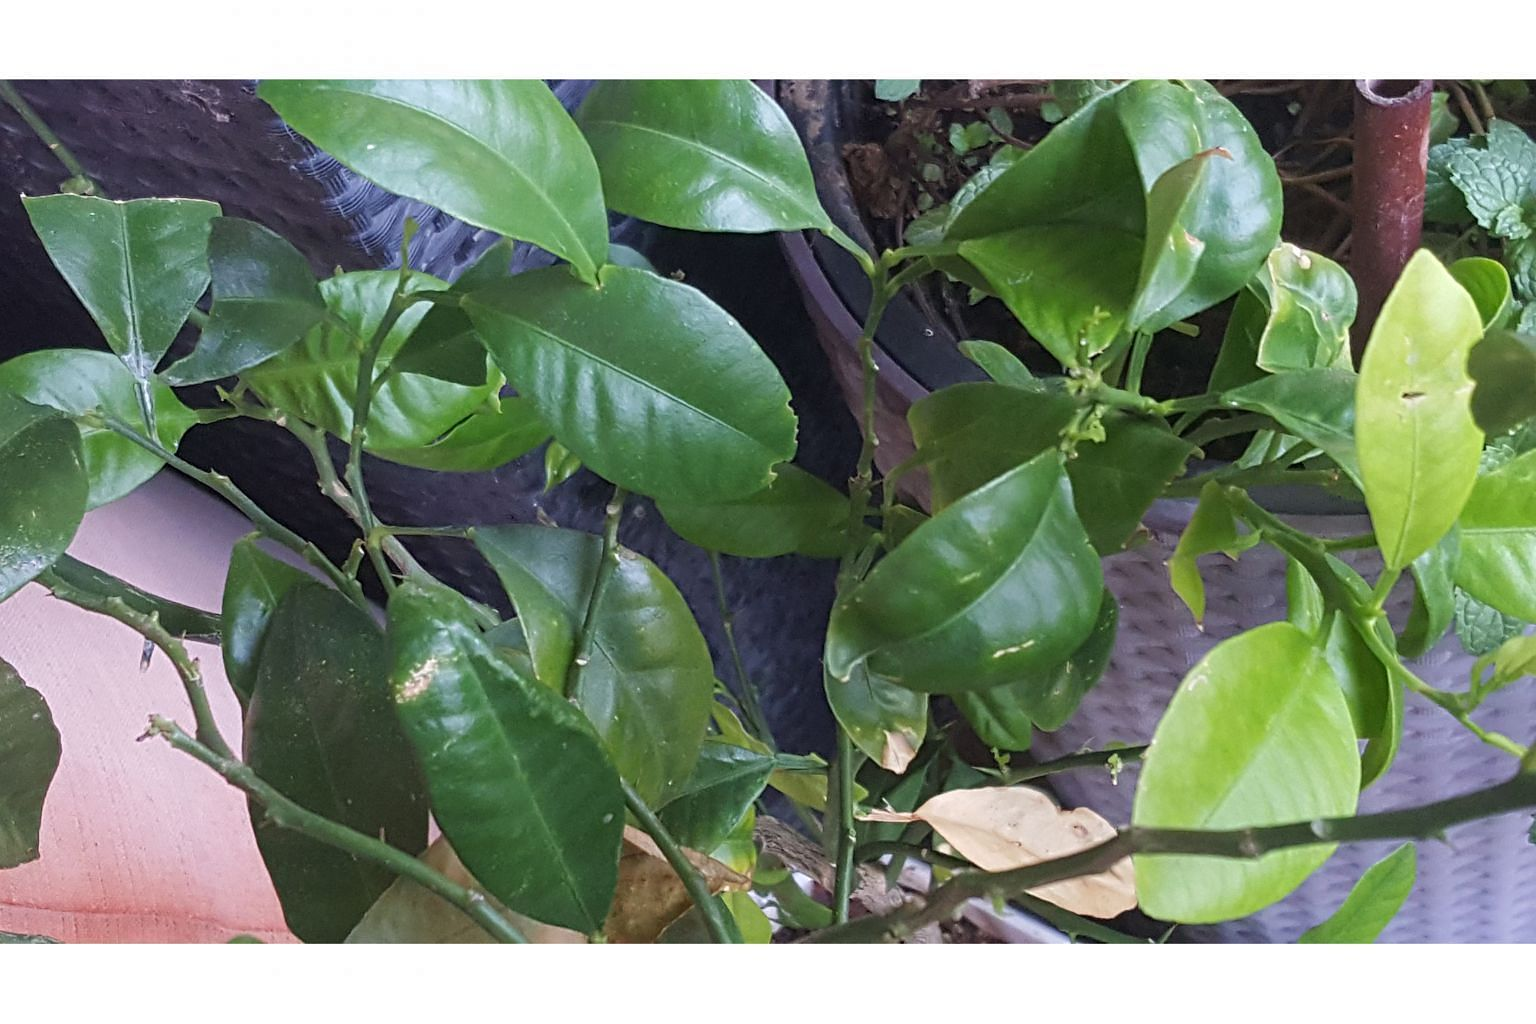 Plant is not limau purut, but possibly Common Lime